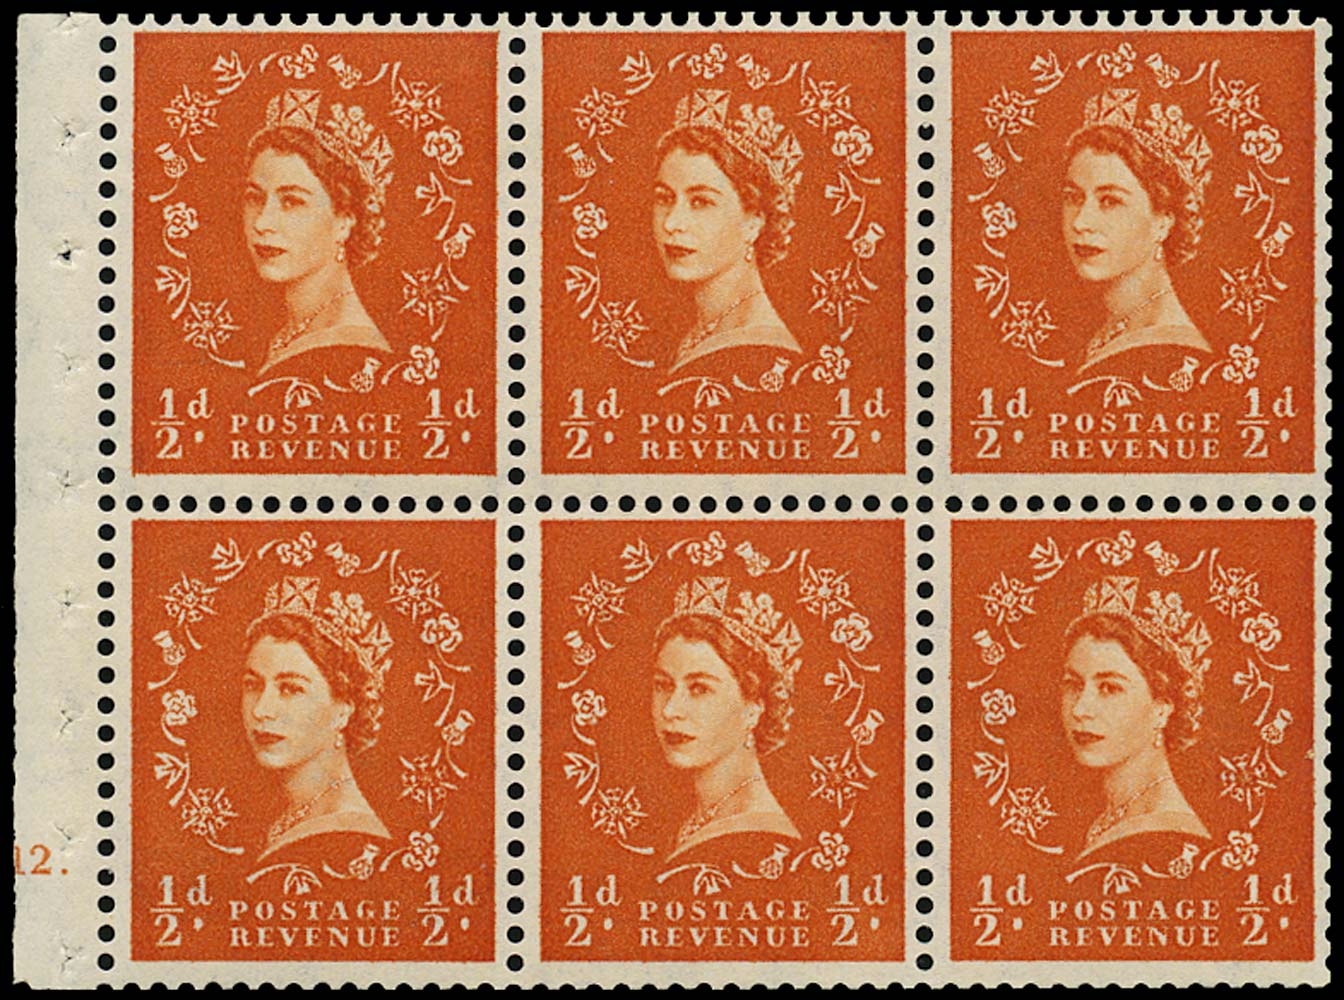 GB 1958  SG570l Booklet pane E12 dot booklet pane of six